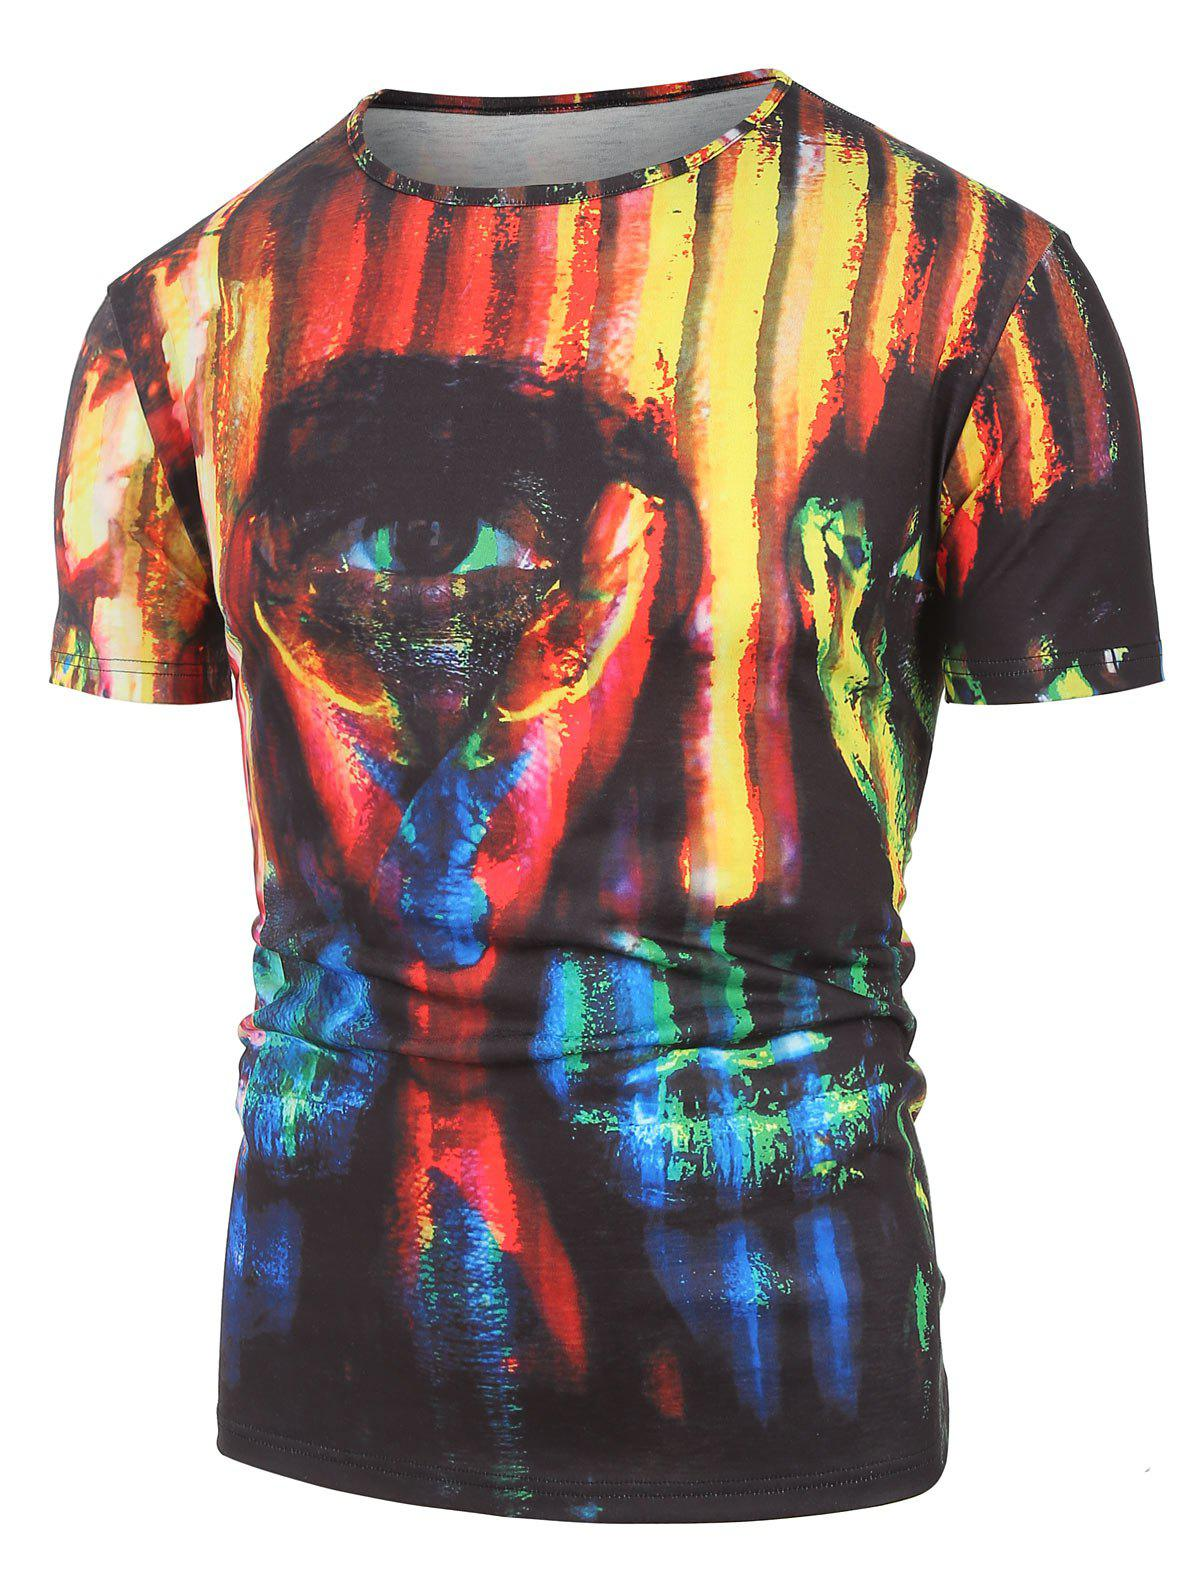 9ecf2fc3d16c 2019 Colorful Printed Short Sleeves T-shirt